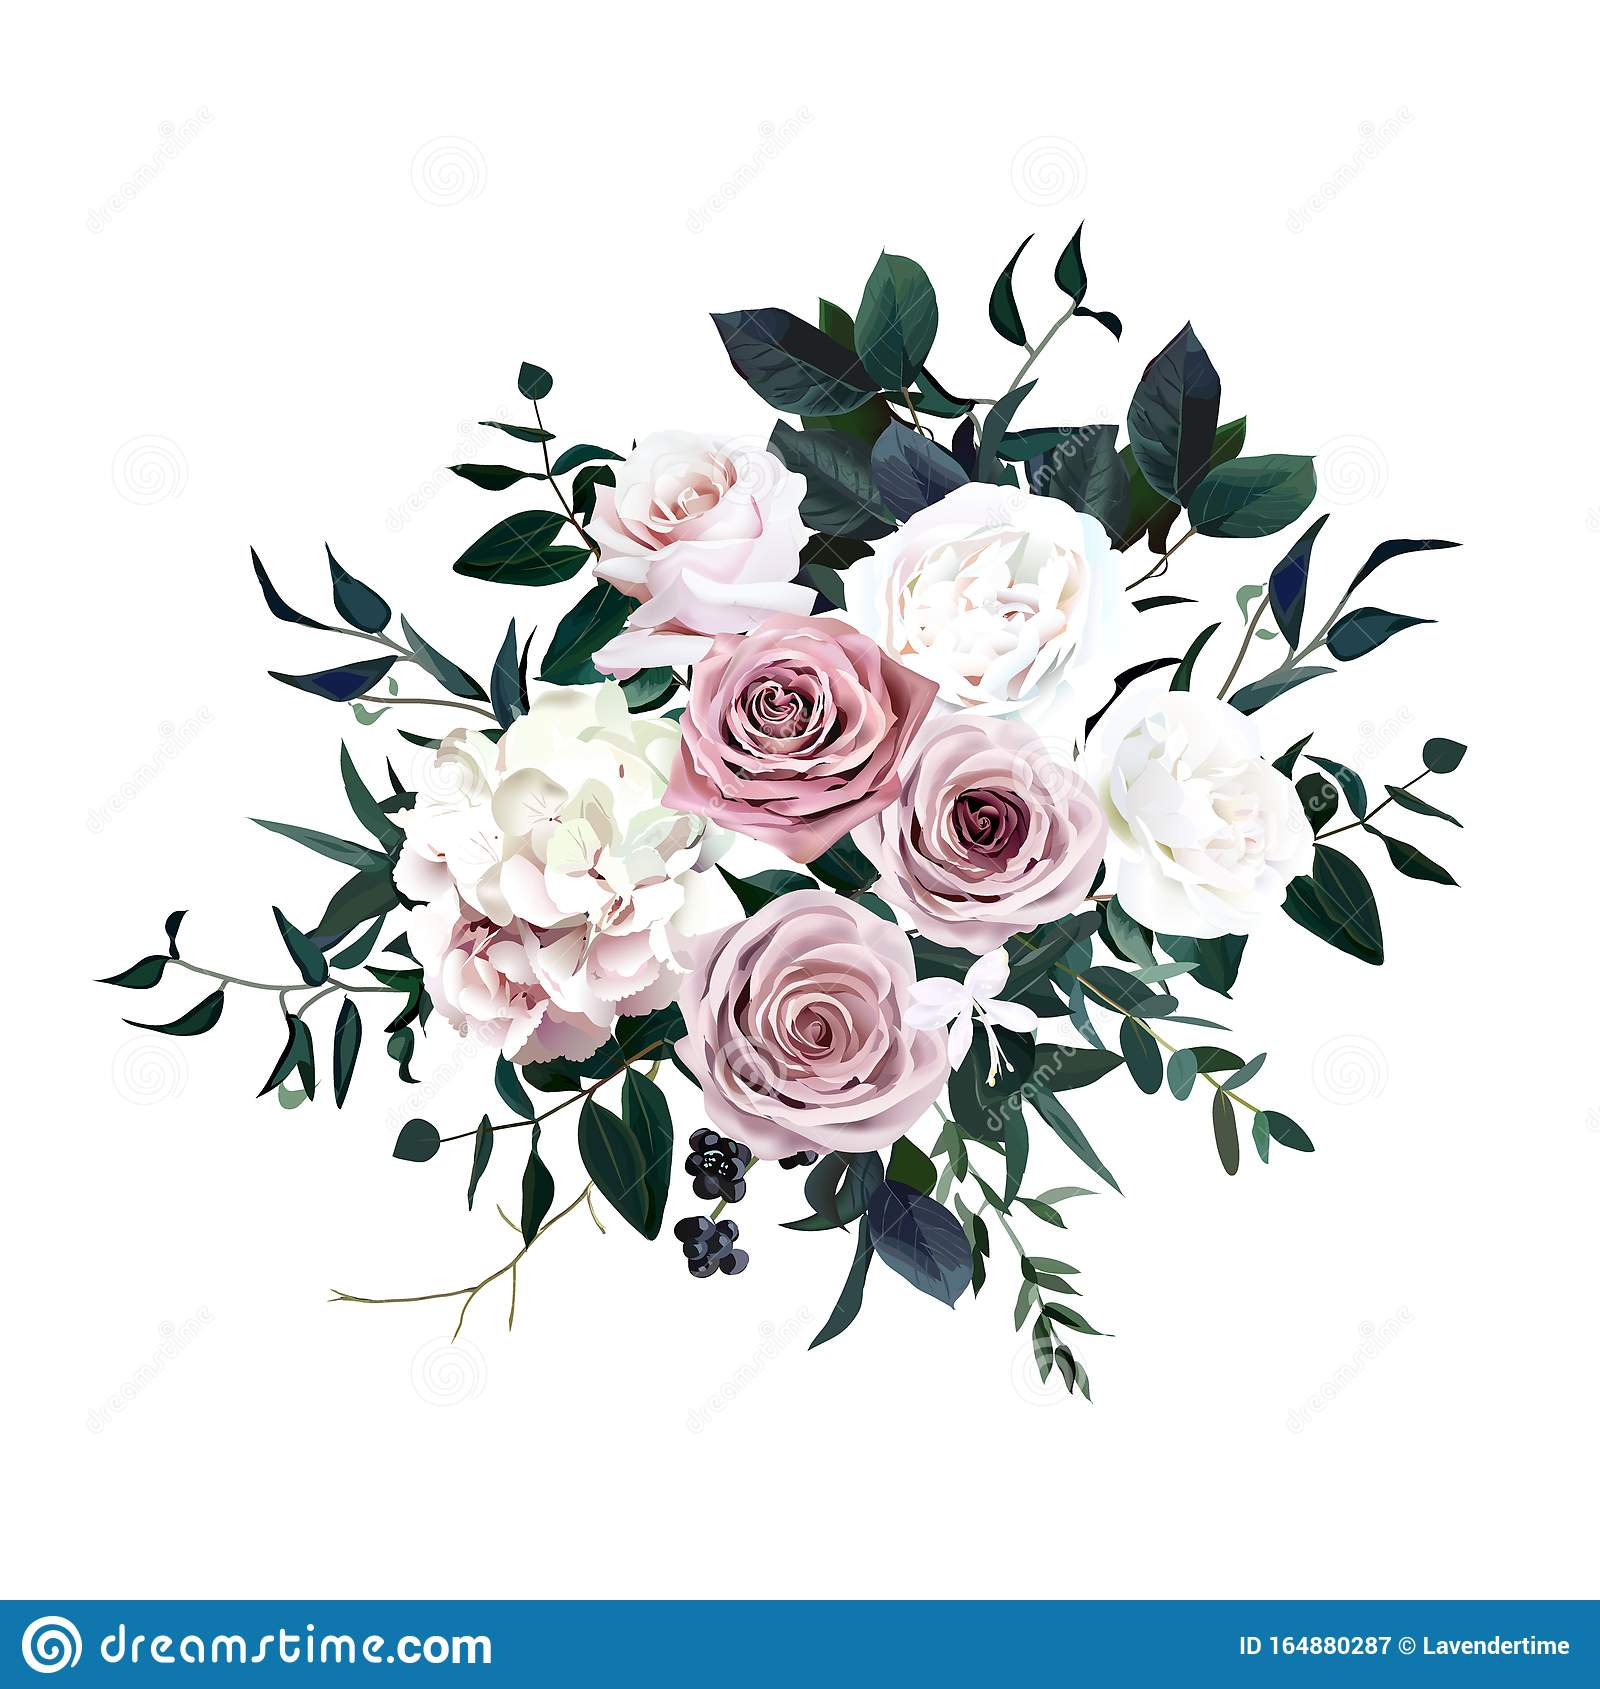 Dusty Pink Pastel White Flowers Glamour Vector Design Wedding Bouquet Stock Vector Illustration Of Dark Bunch 164880287